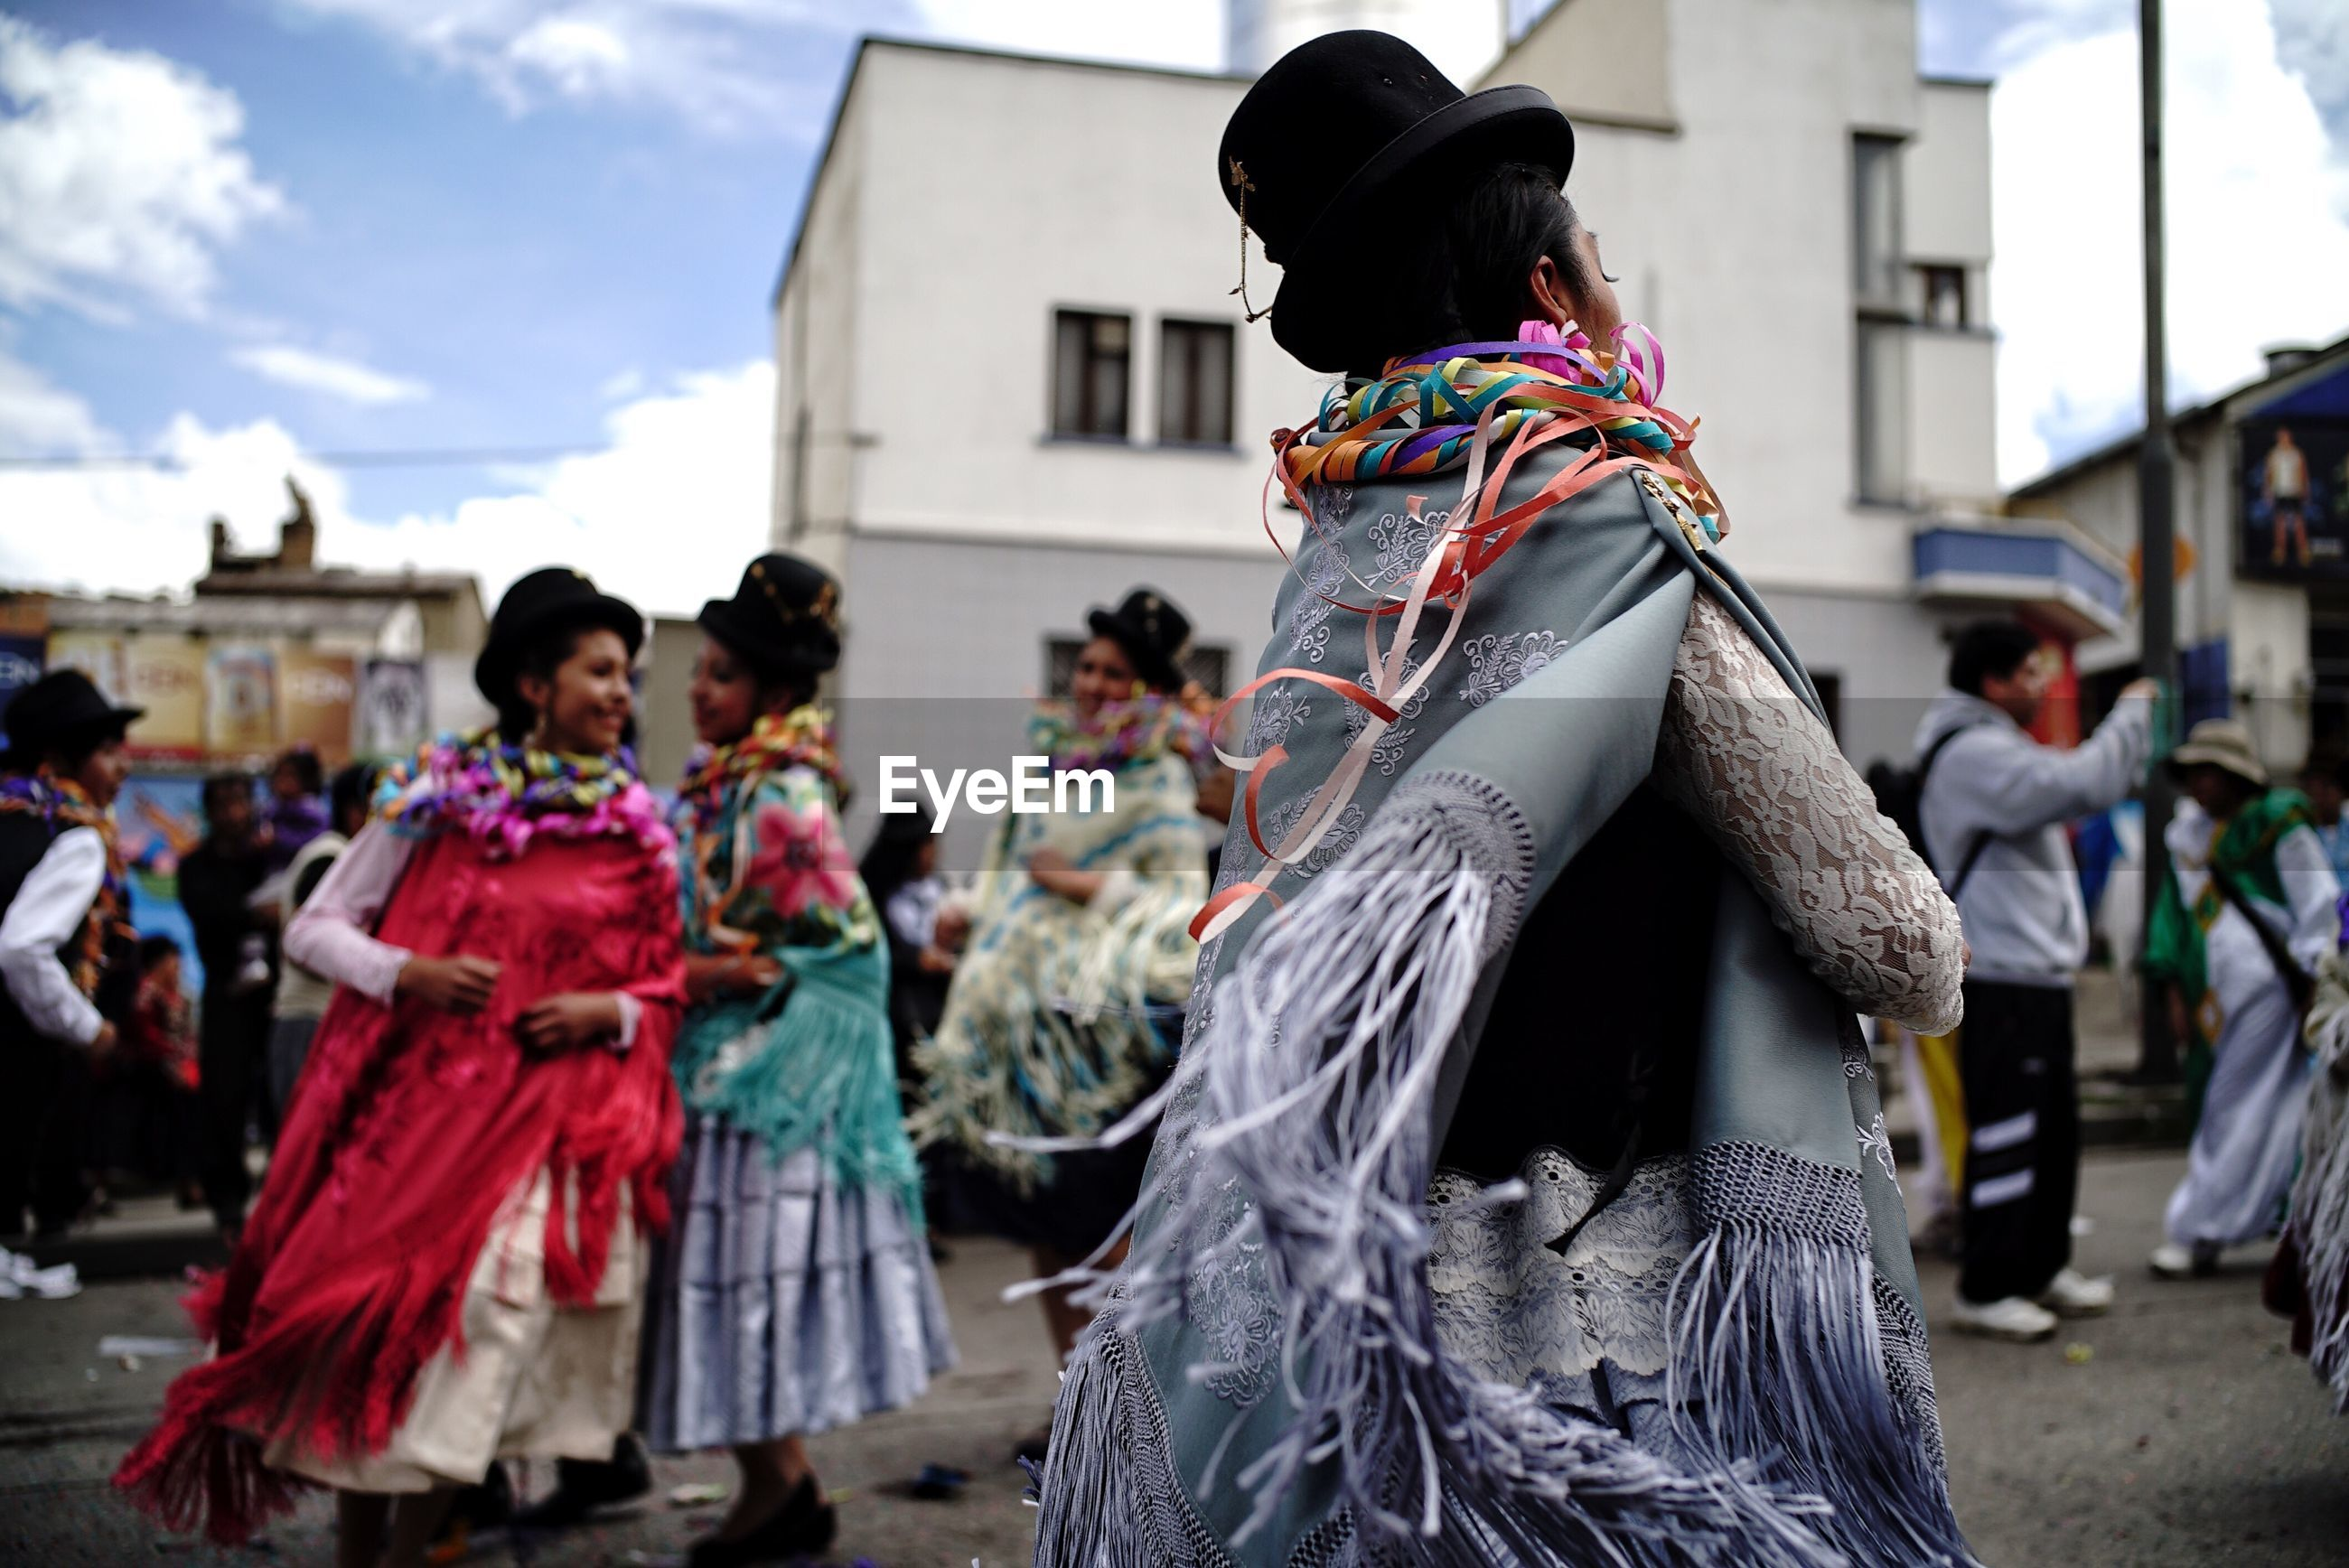 People in traditional costumes dancing during celebration in city